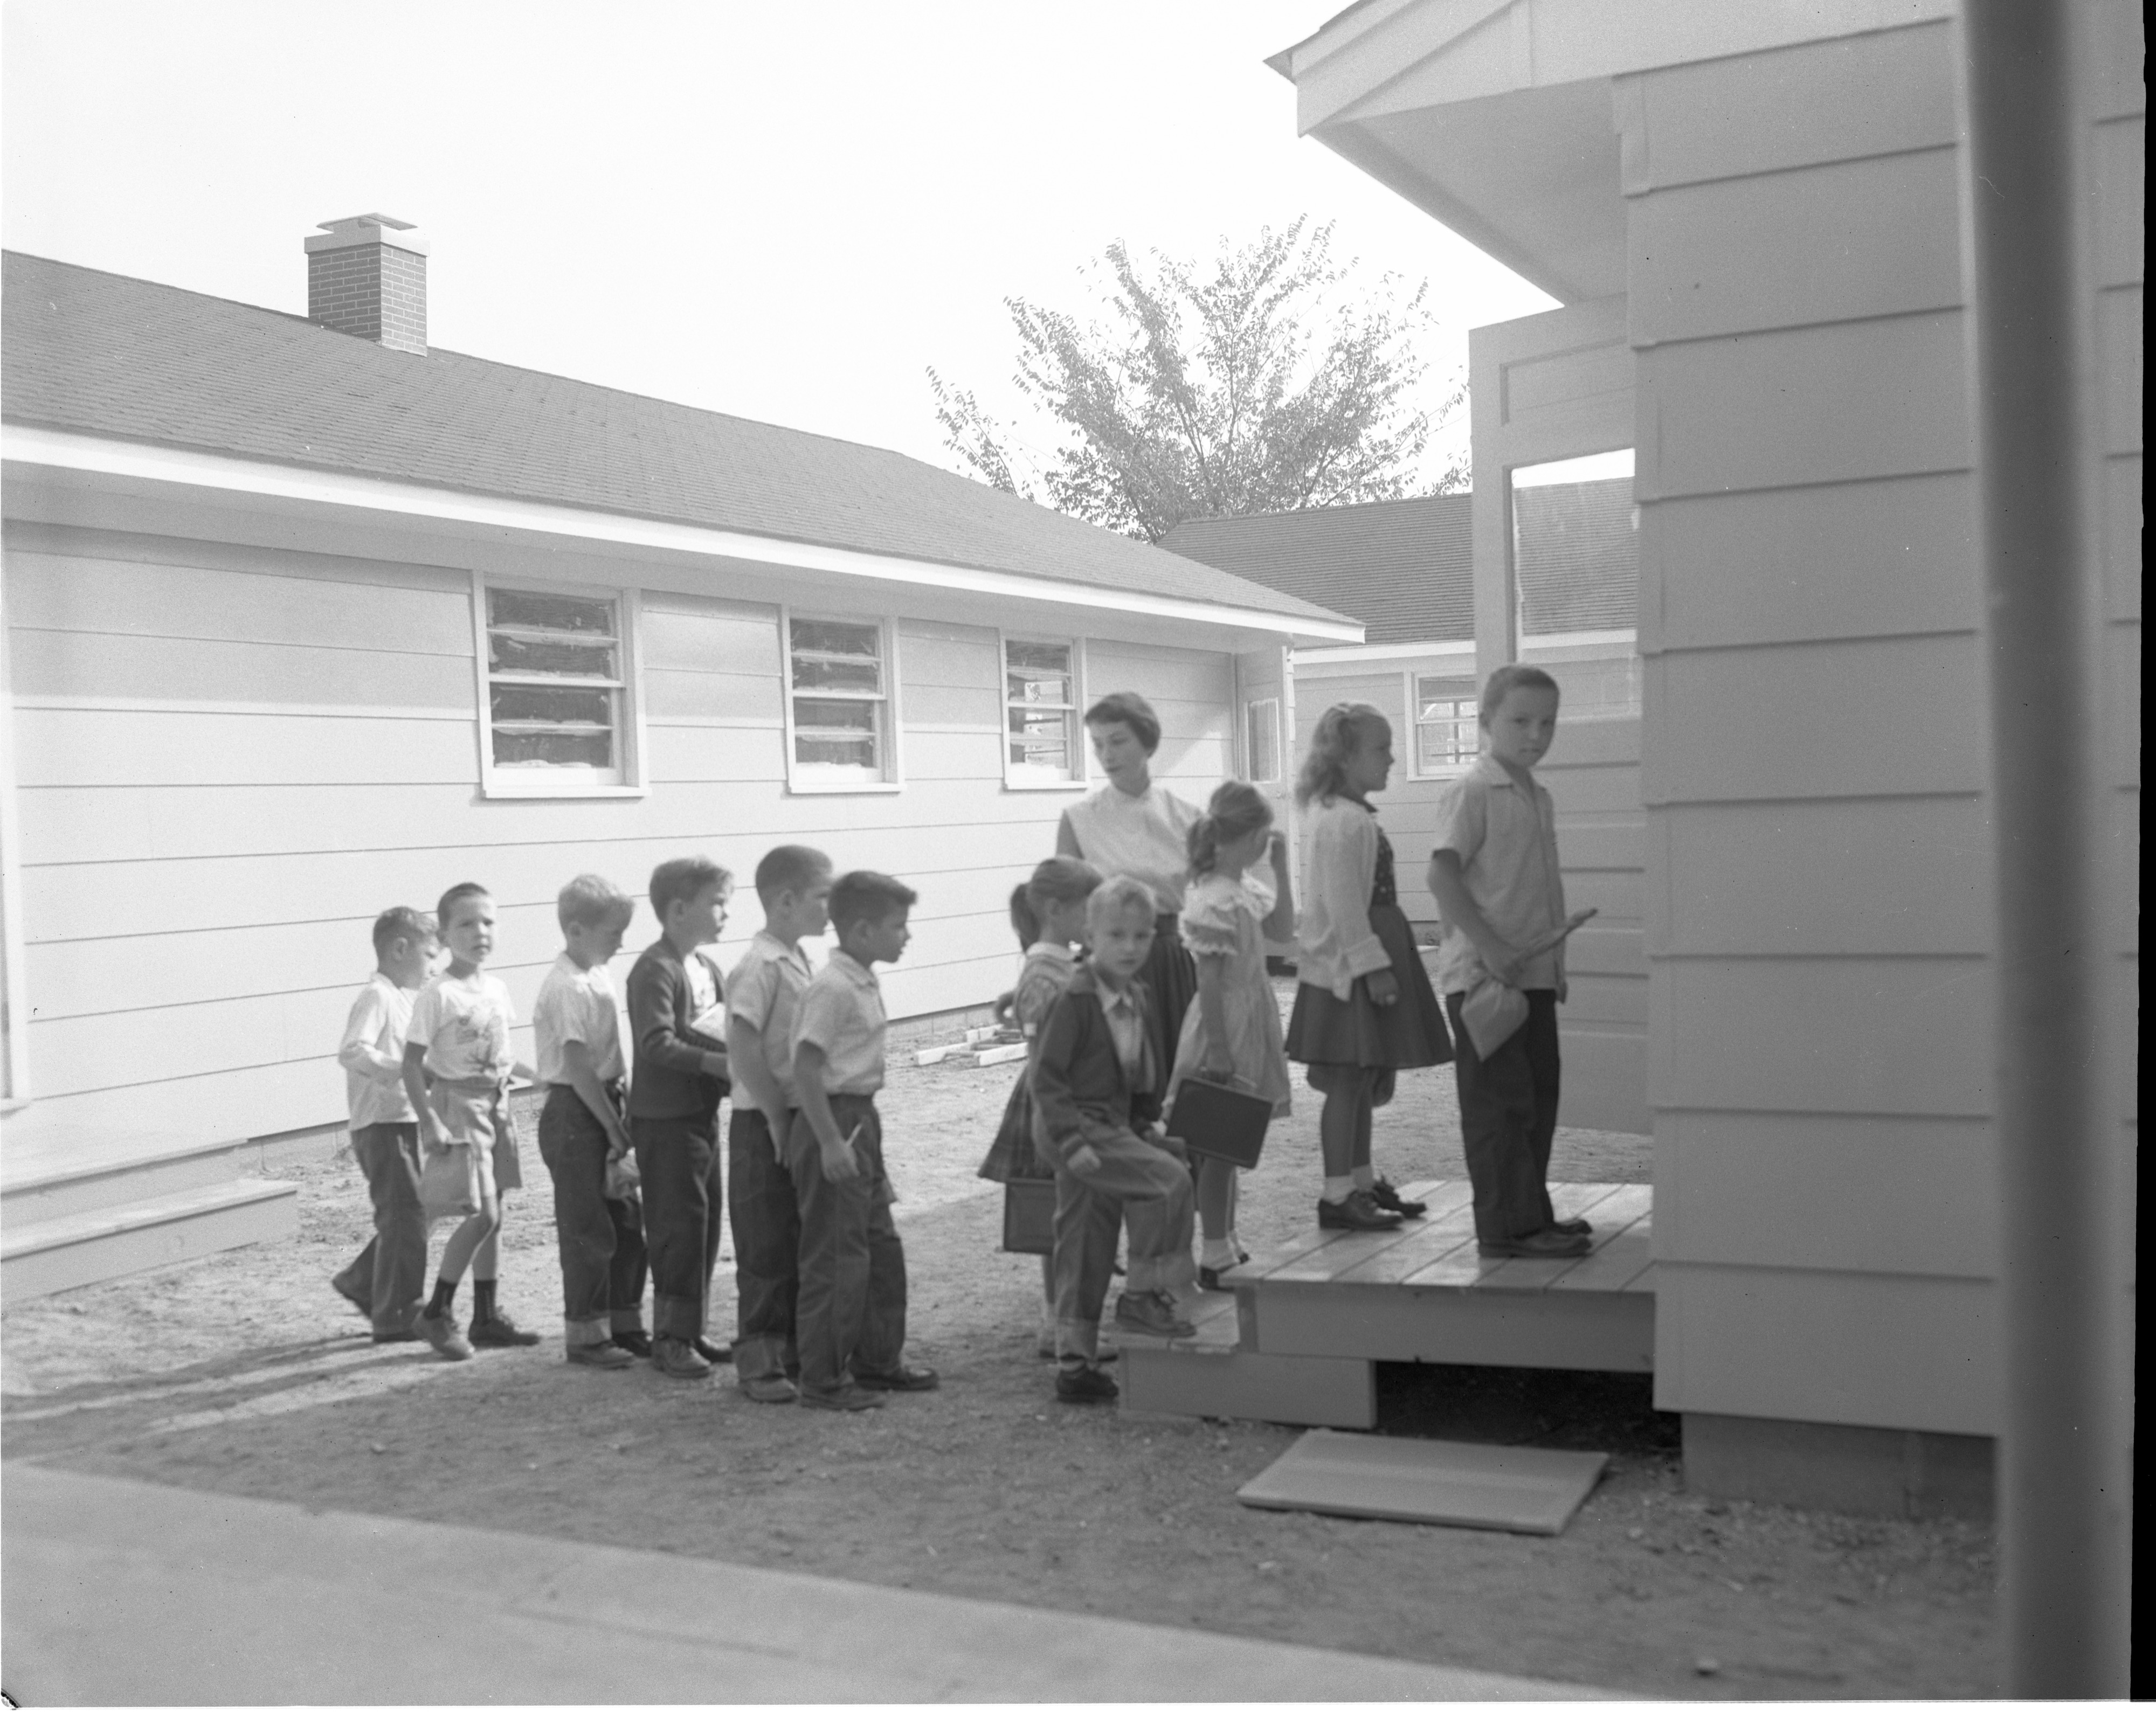 First Day Of School At George Elementary School, September 1955 image